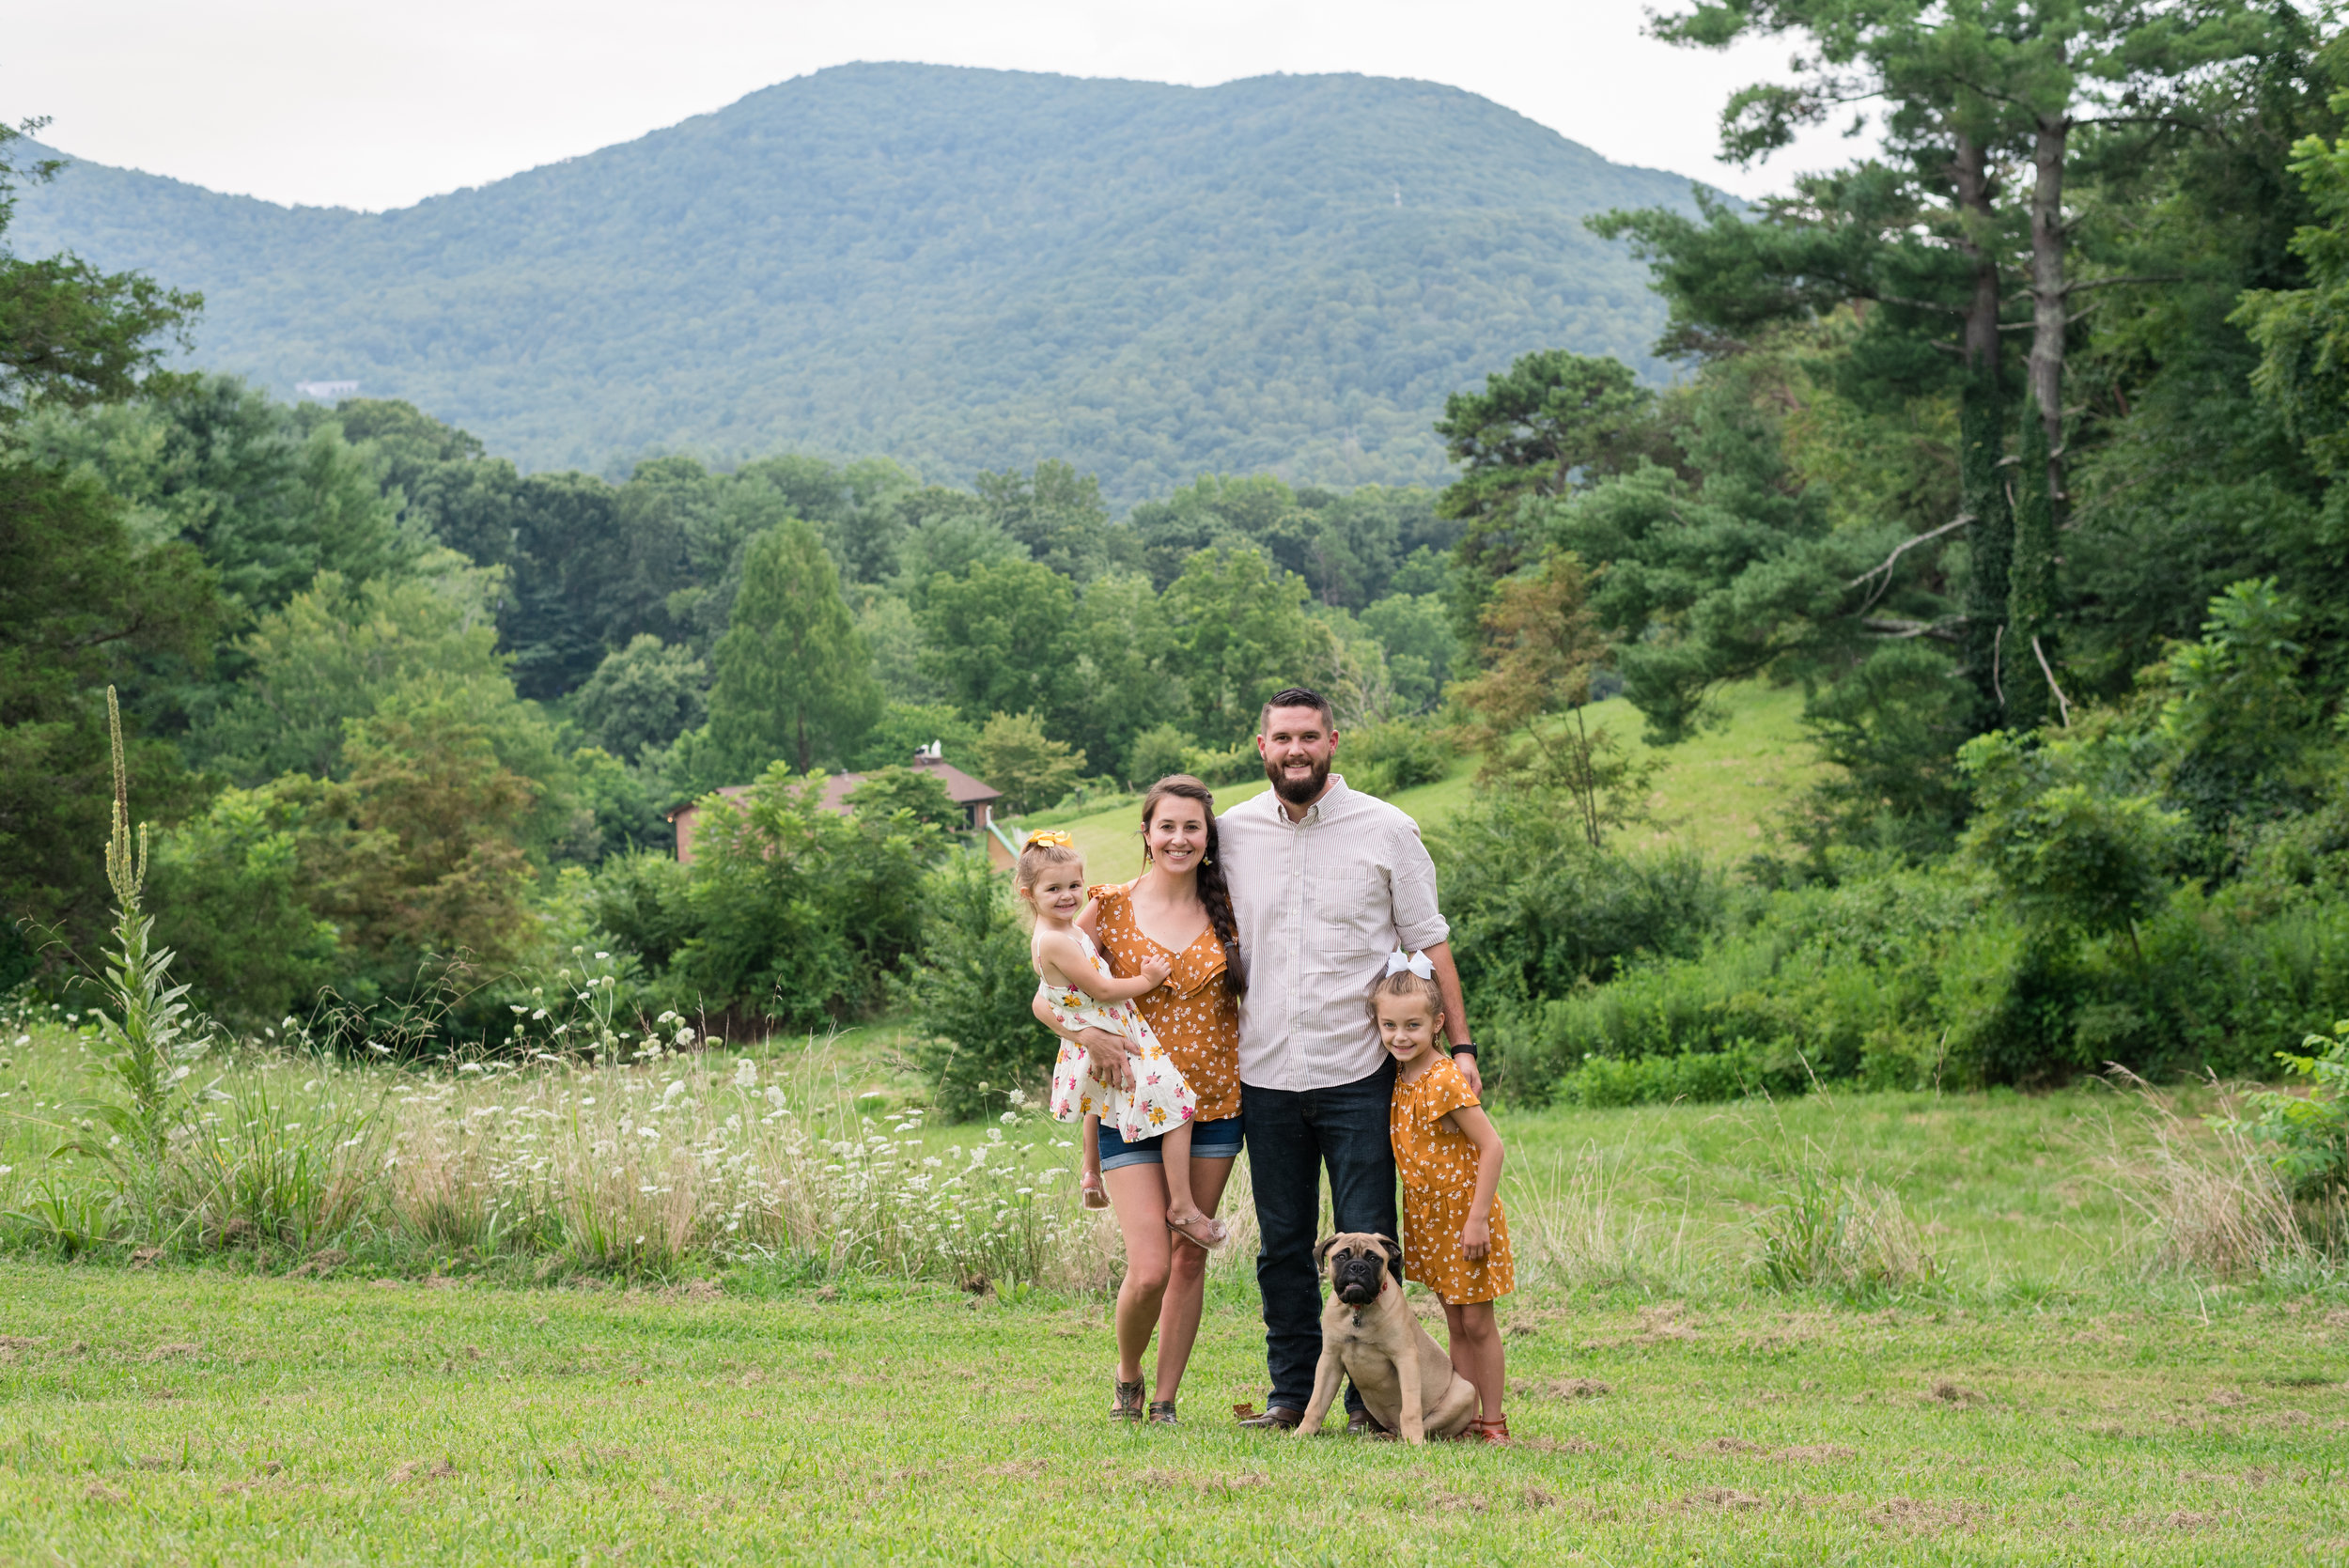 asheville-family-photographer- 001.jpg